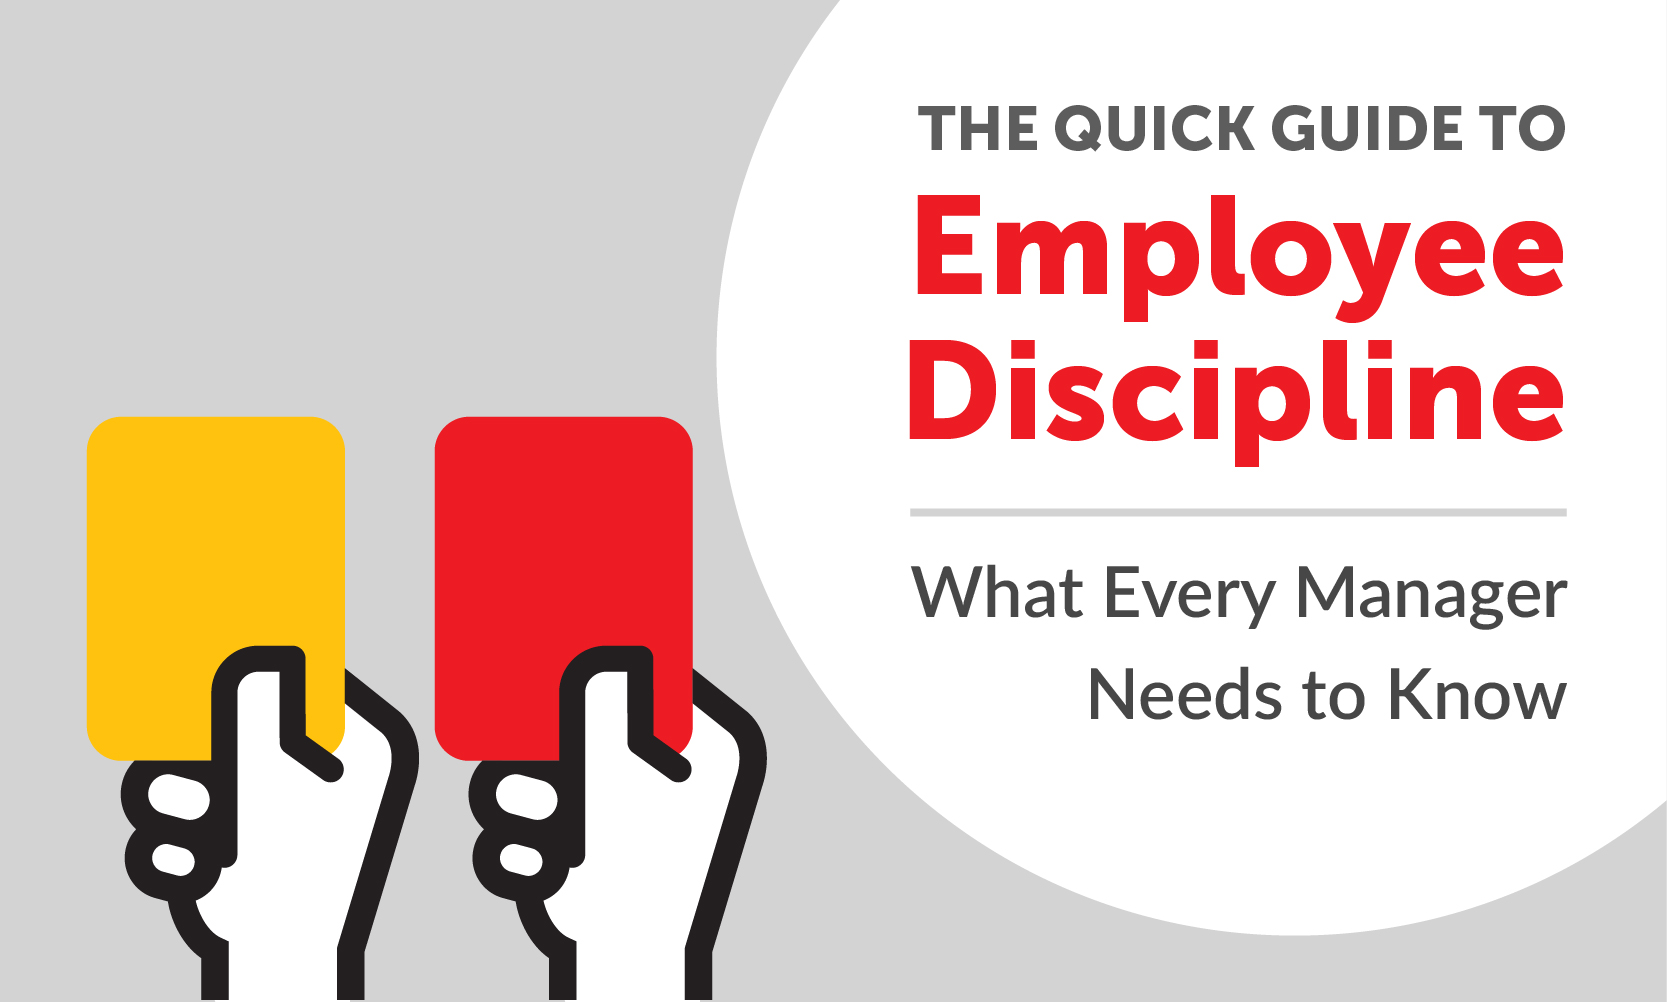 The Quick Guide to Employee Discipline: What Every Manager Needs to